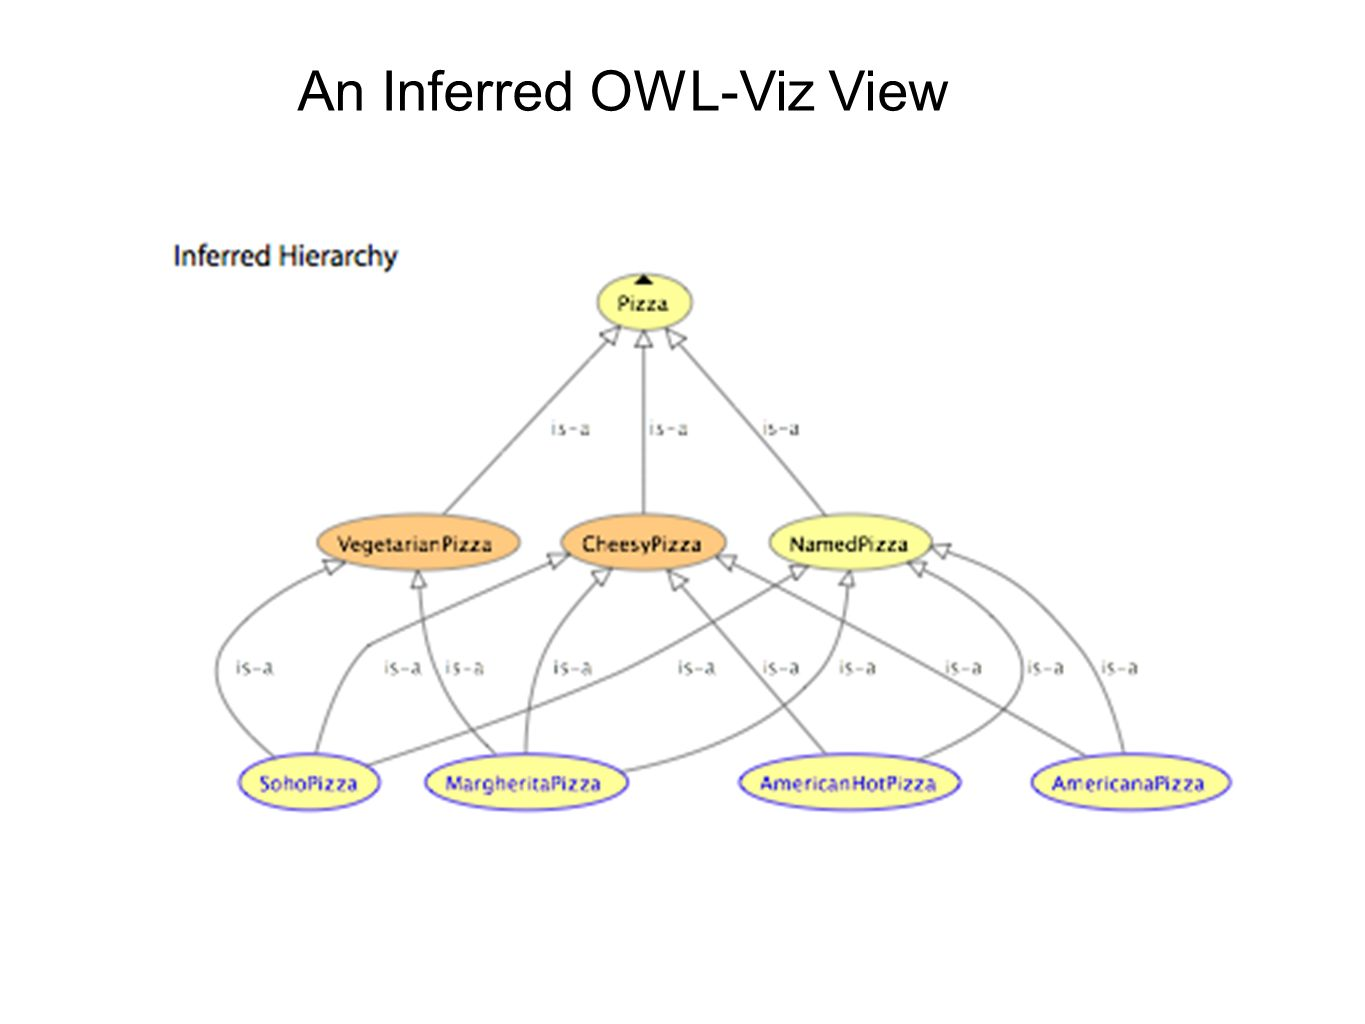 An Inferred OWL-Viz View